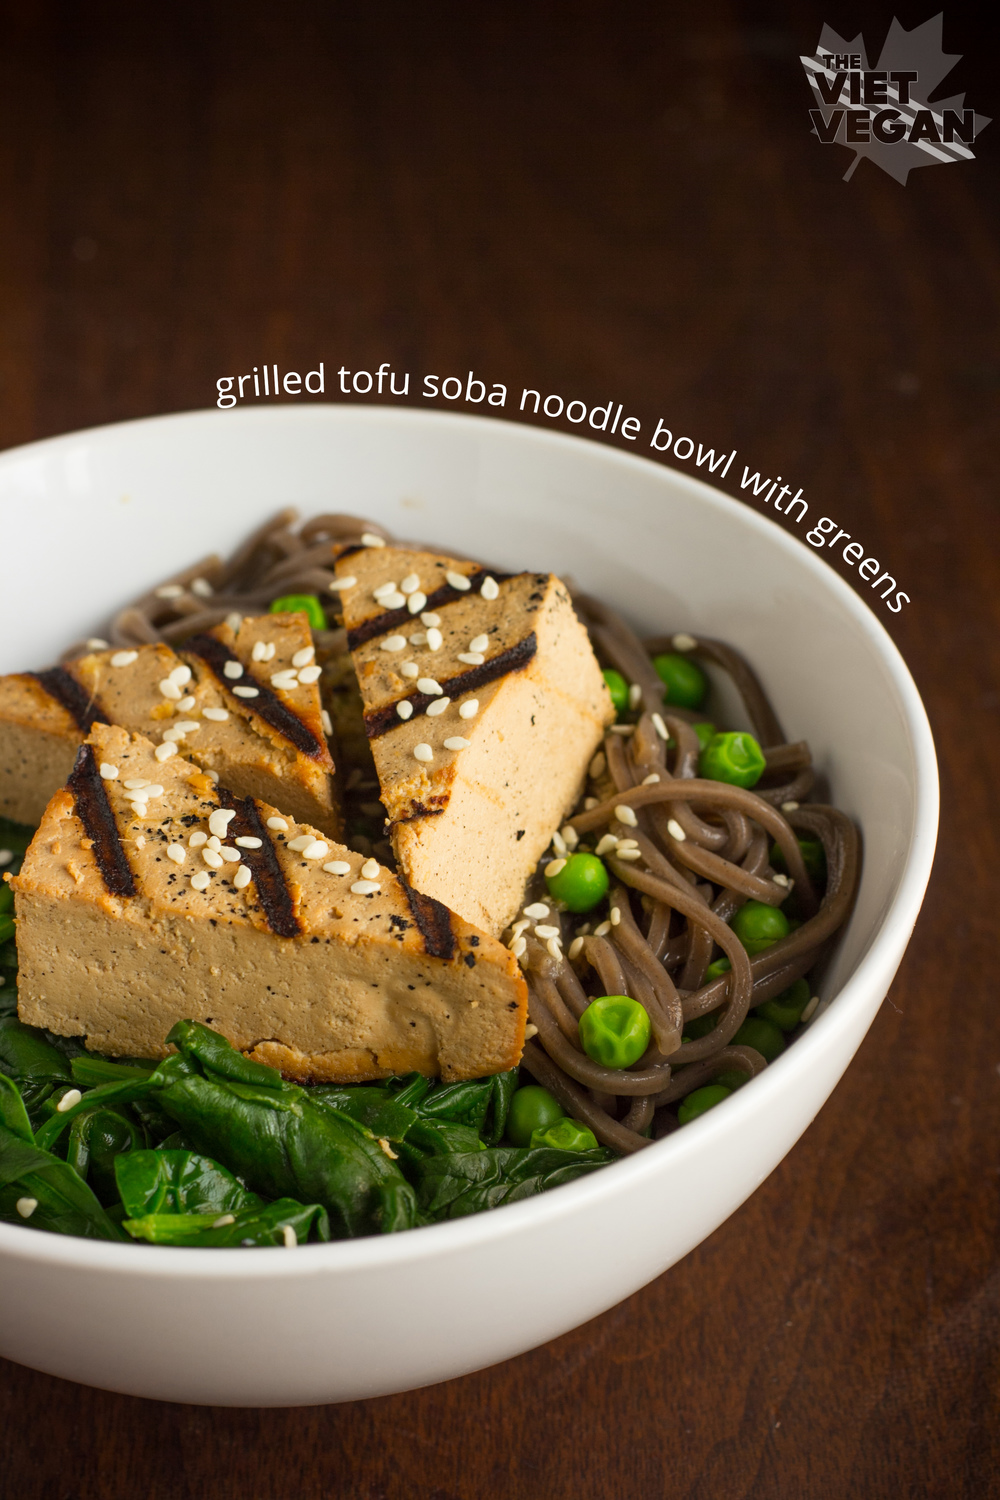 From The Viet Vegan - Grilled Tofu Soba Noodle Bowl with Greens - A warm bowl of grilled, marinated tofu atop soba noodles with spinach and eda